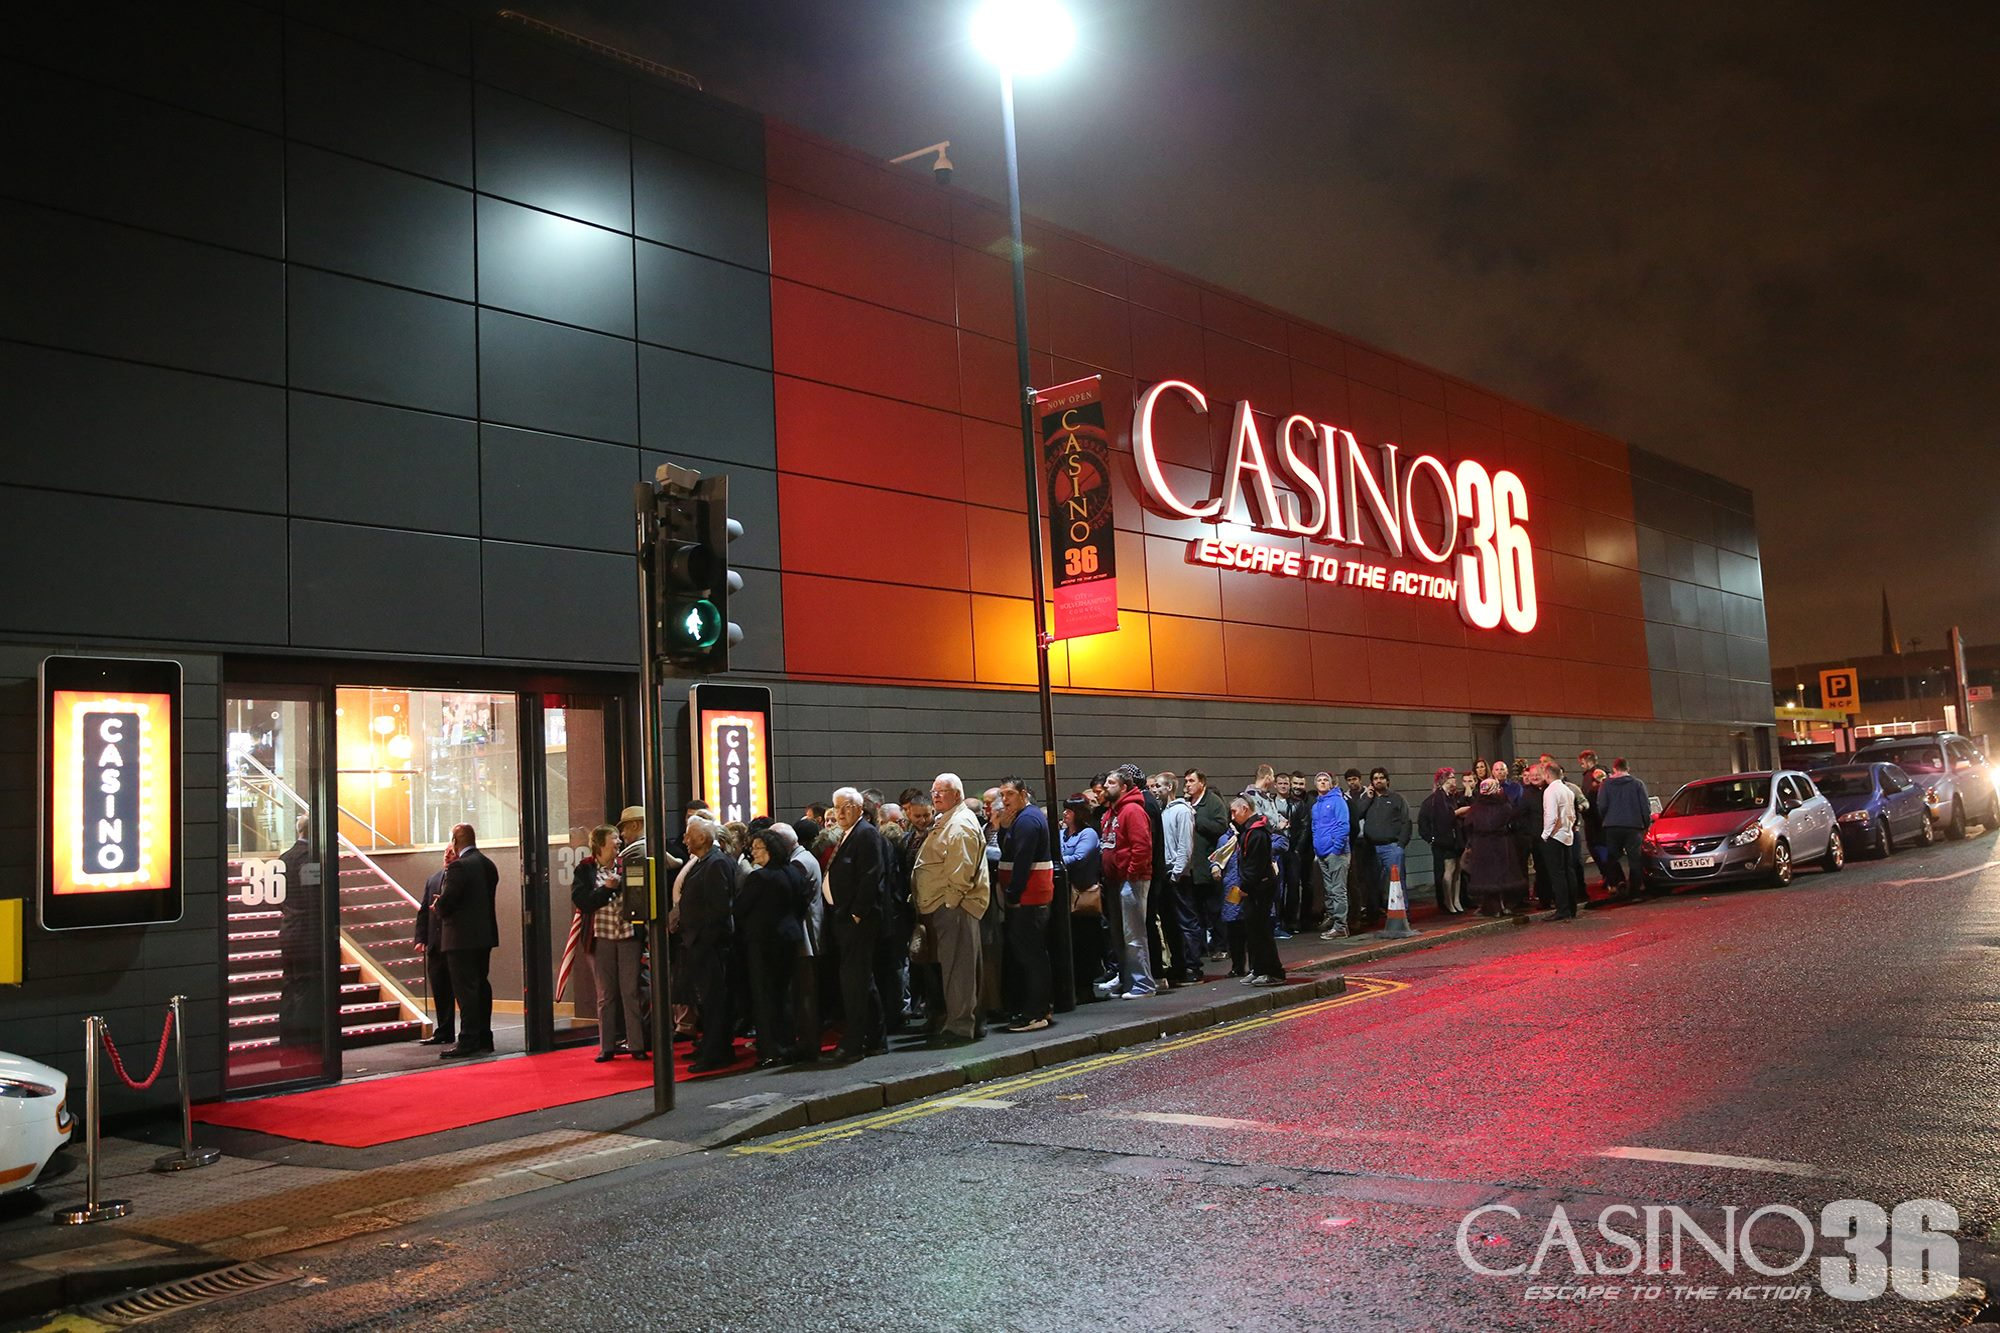 queing http://www.casinos4dummies.co.uk/2005-gaming-act-and-new-casino-licences/